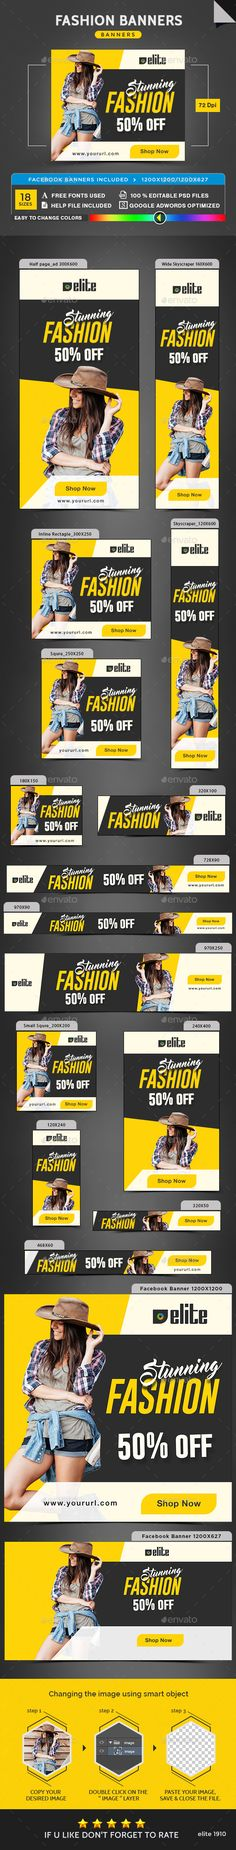 Fashion Banners Template PSD                                                                                                                                                                                 More